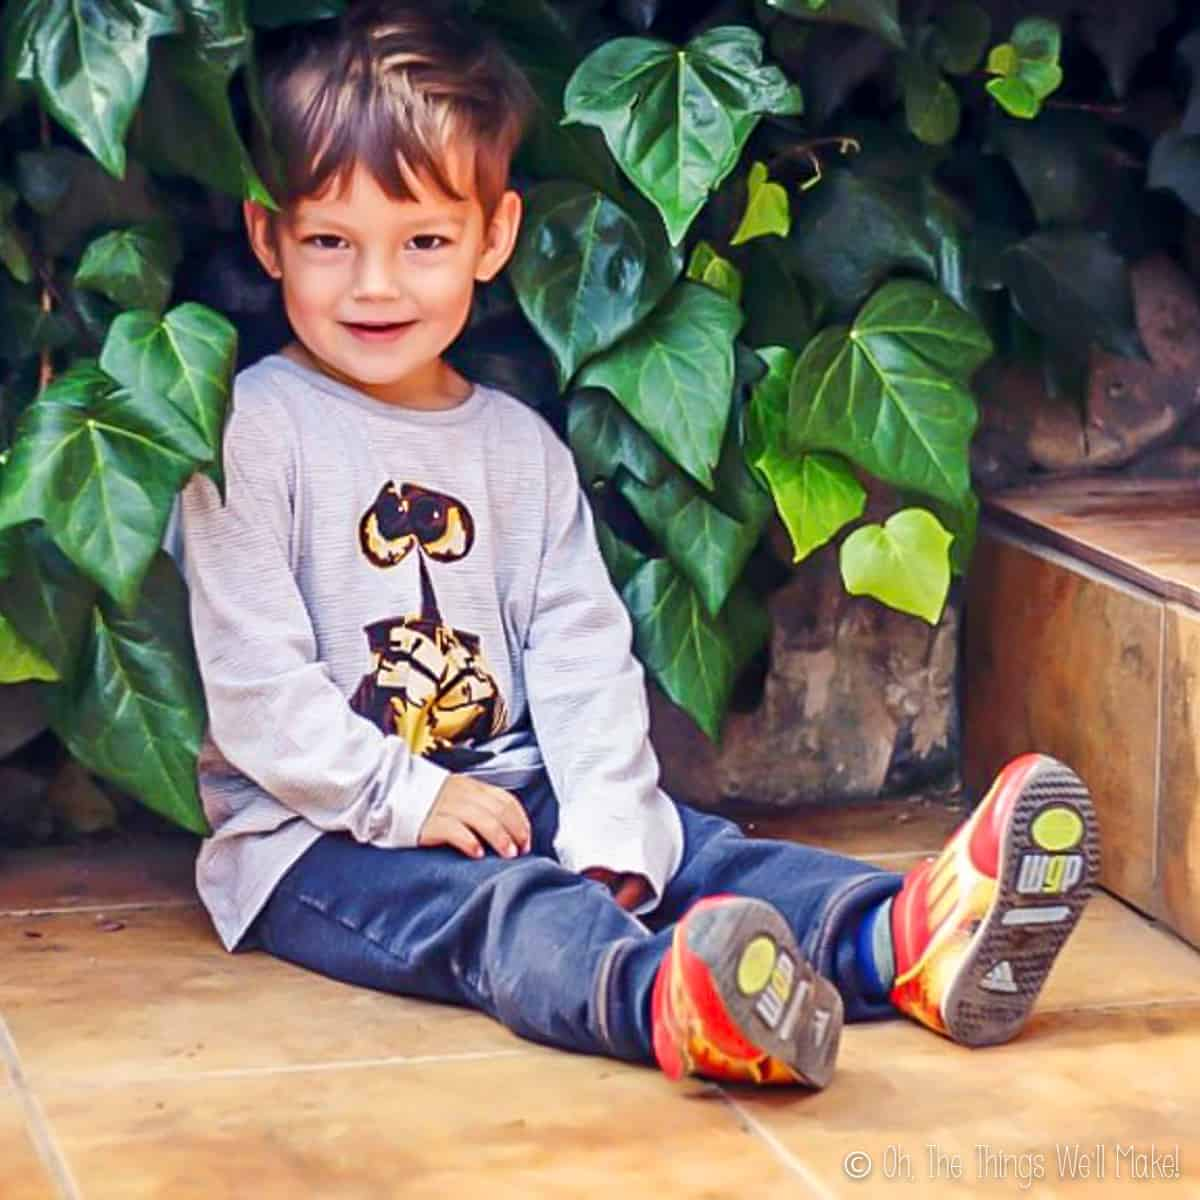 A young boy sitting on the ground wearing a wall-E t-shirt